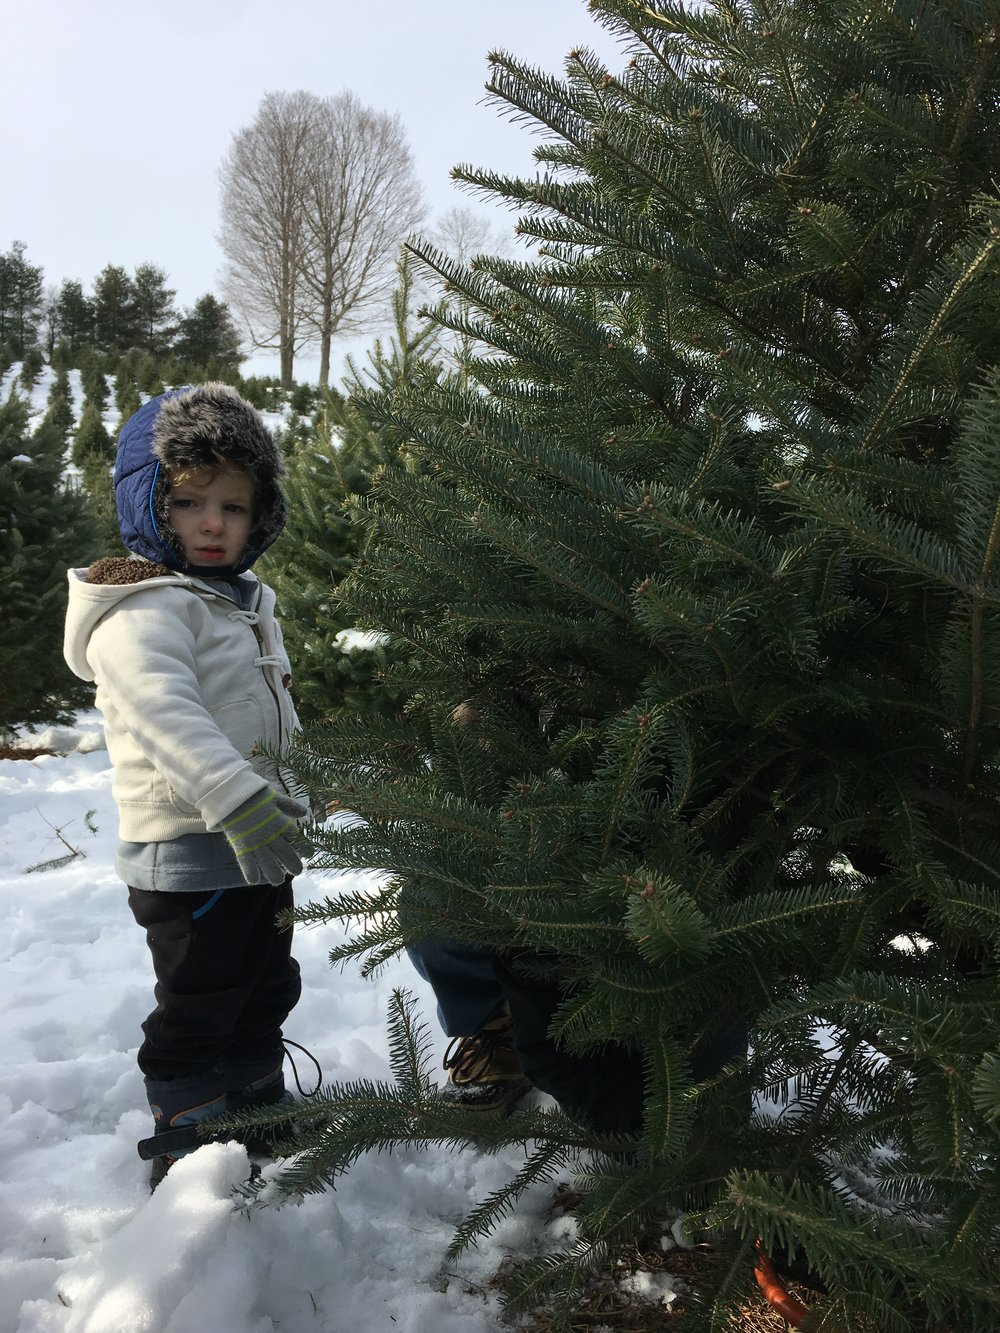 Garrison, picking out our Christmas Tree, is our Rainbow Baby. This term refers to a child born after miscarriage, stillbirth, neonatal death or infant loss.